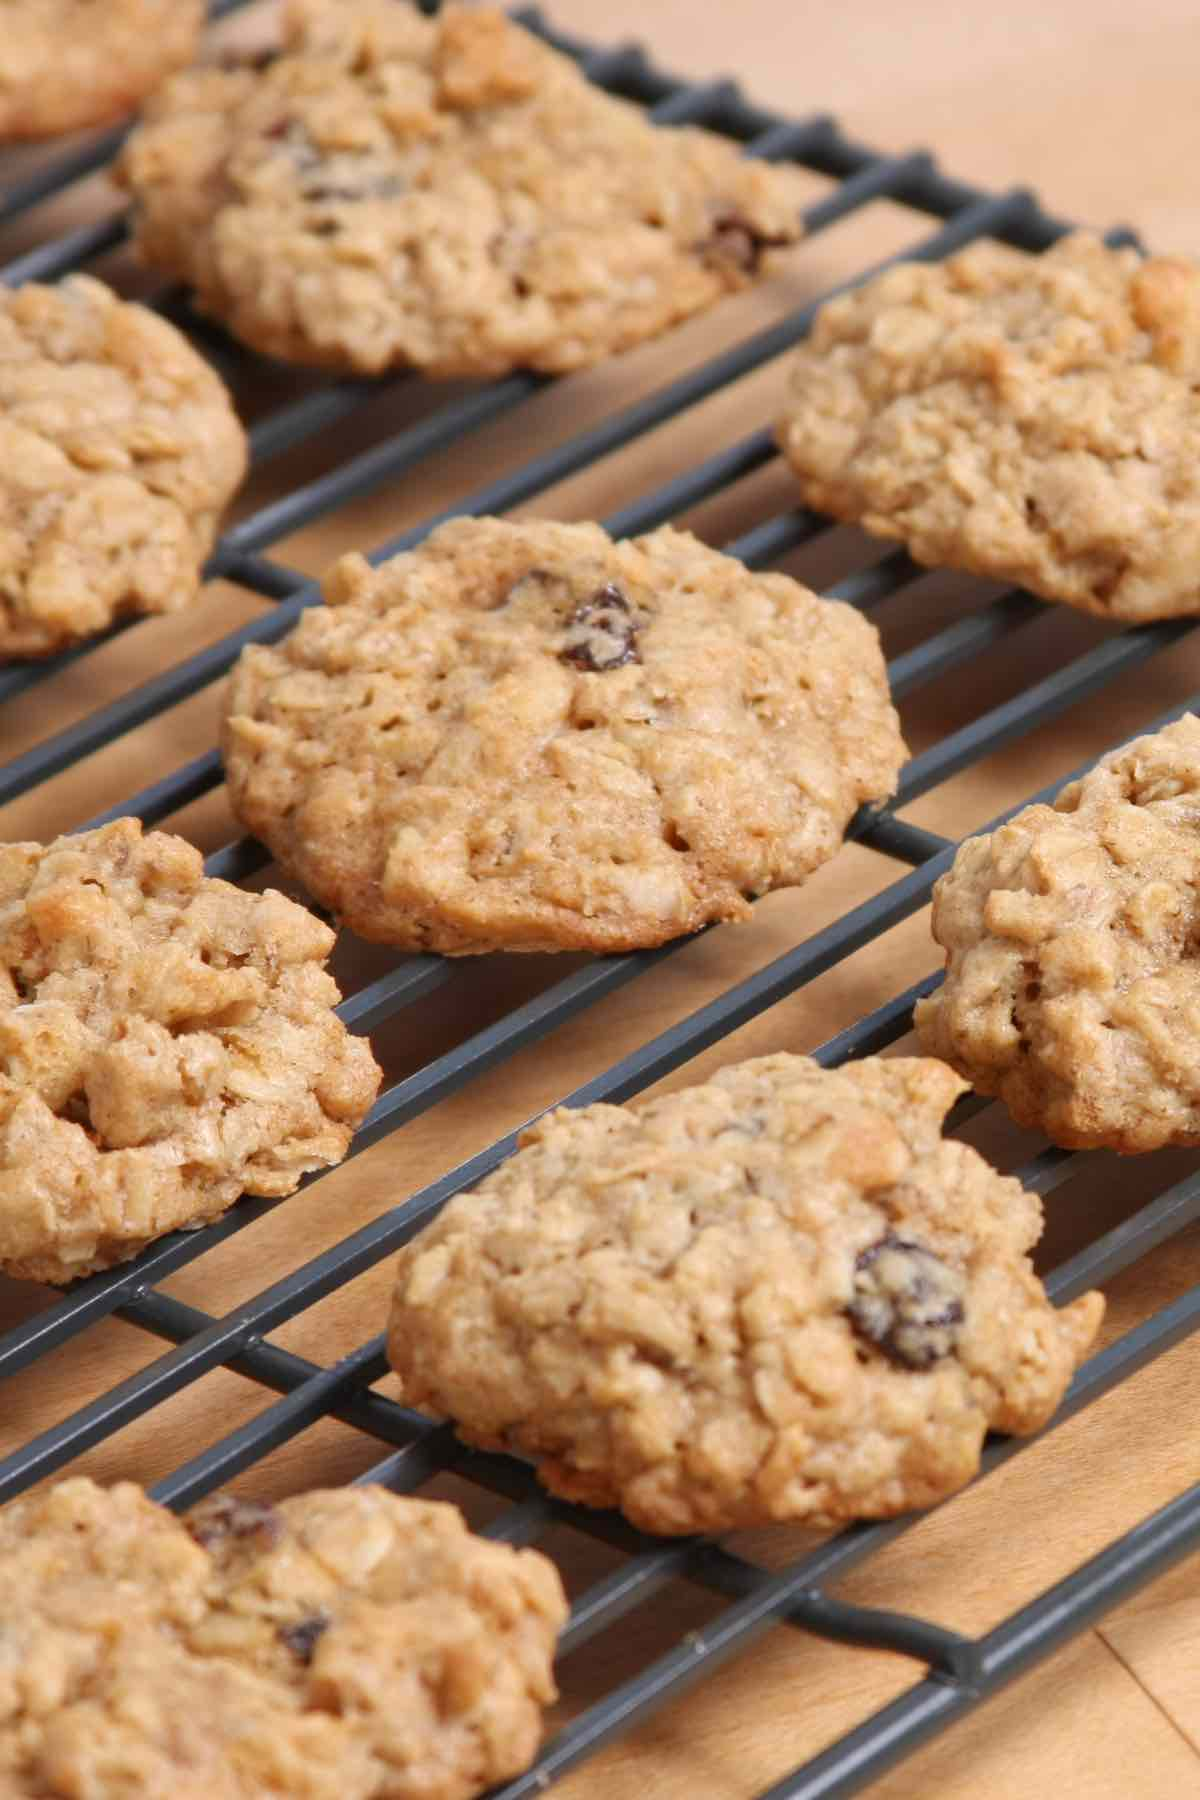 Soft and chewy Quaker Oatmeal Cookies are easy to prepare with just a few ingredients from your pantry. Raisins add sweetness and even more flavor to this mouth-watering treat that turns out perfectly every single time!